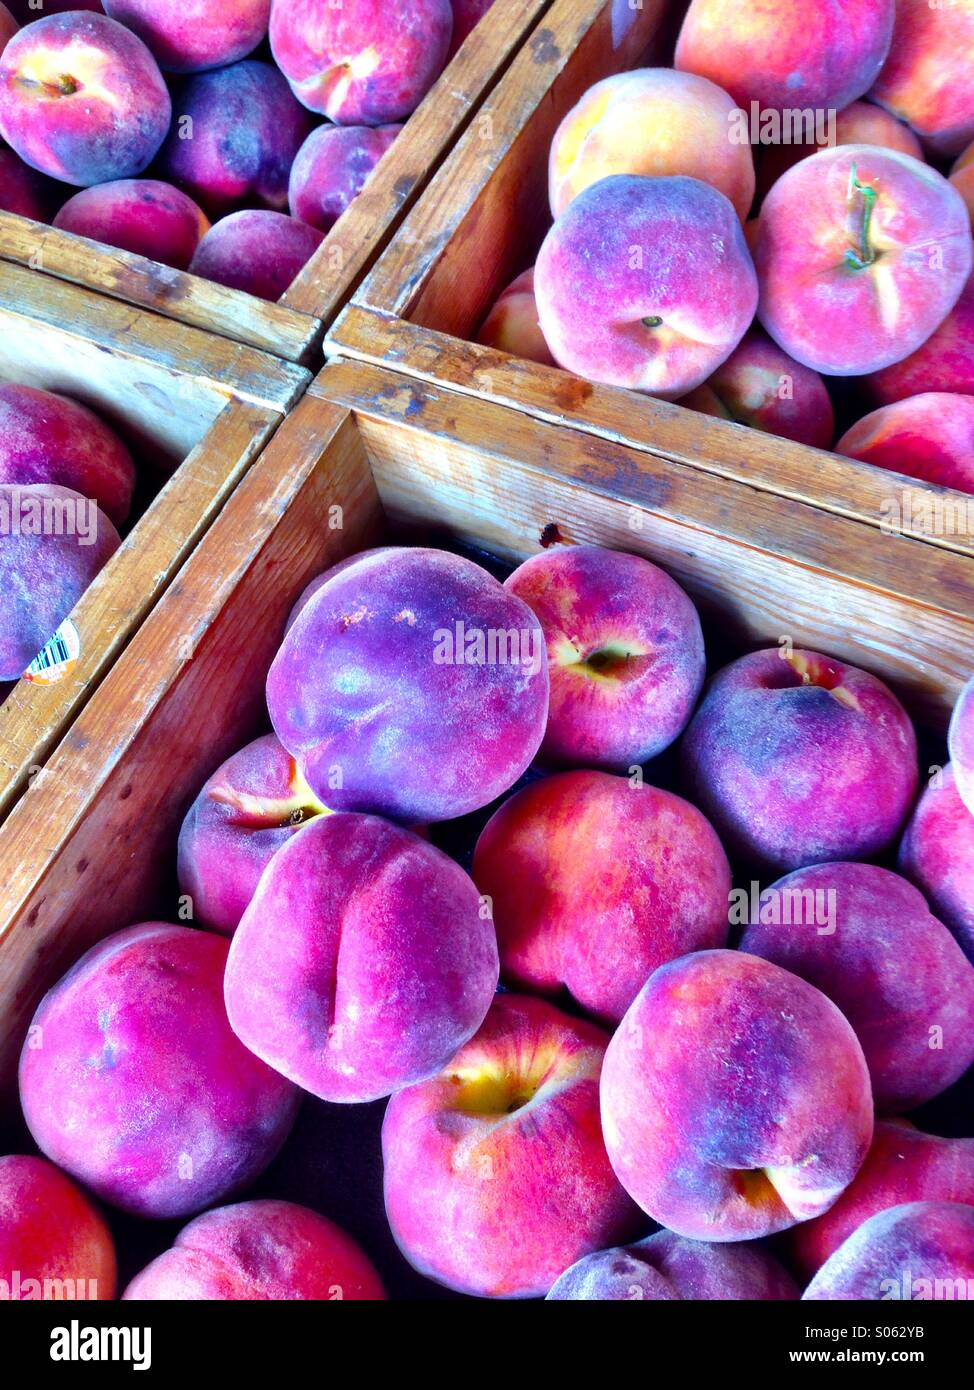 Peaches in wooden crates - Stock Image